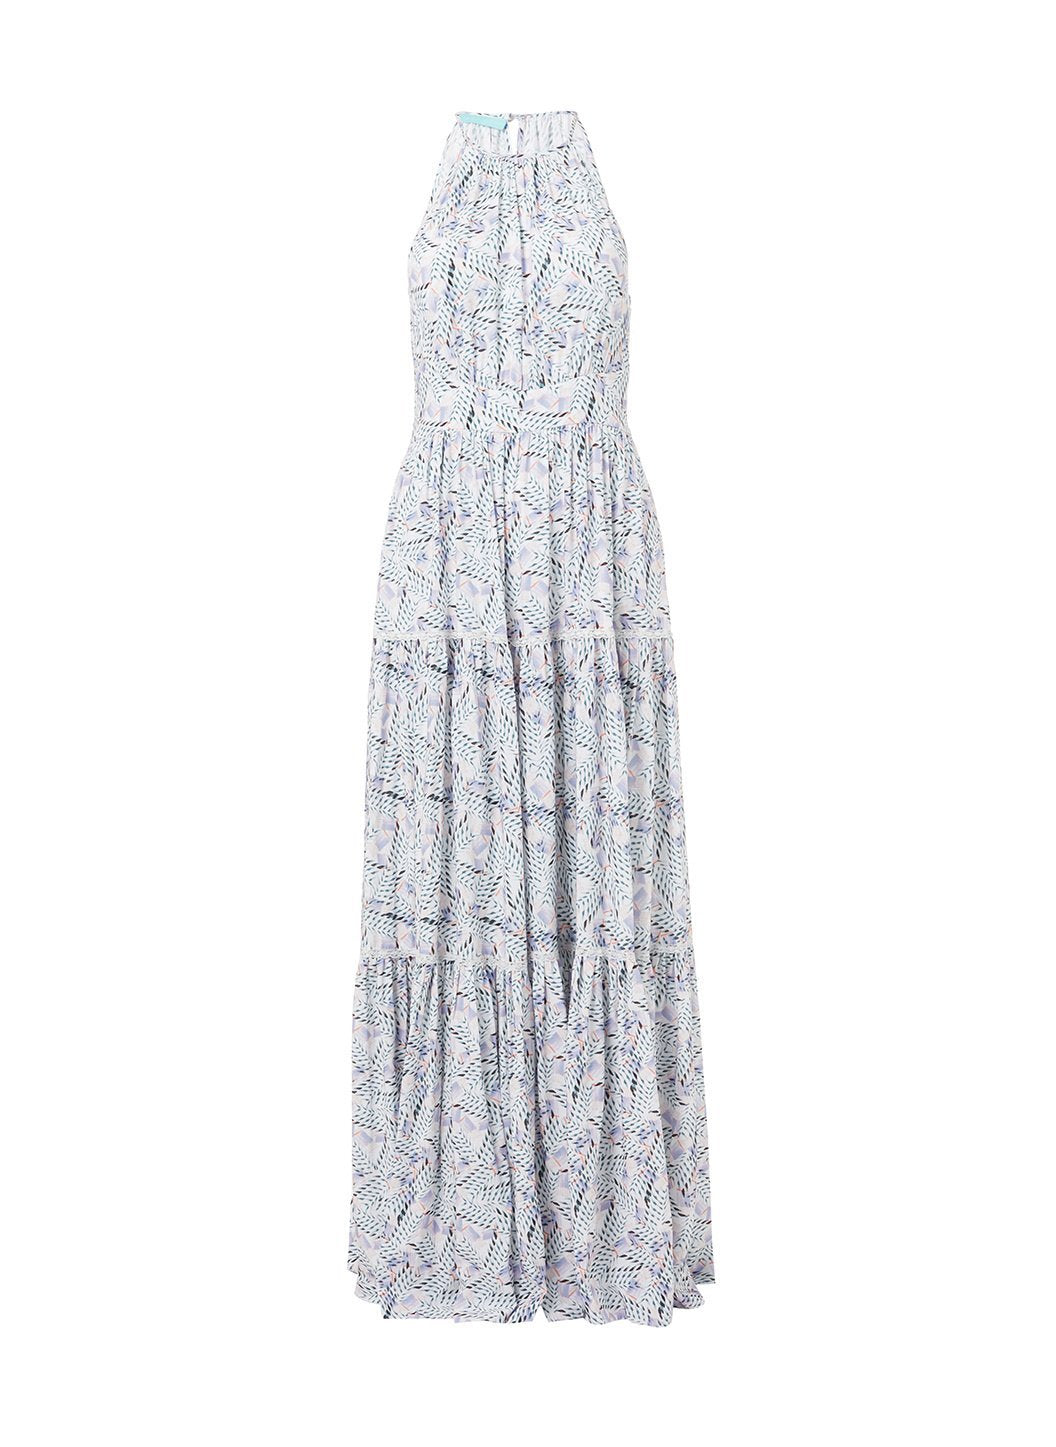 isadora azari high neck maxi dress 2019